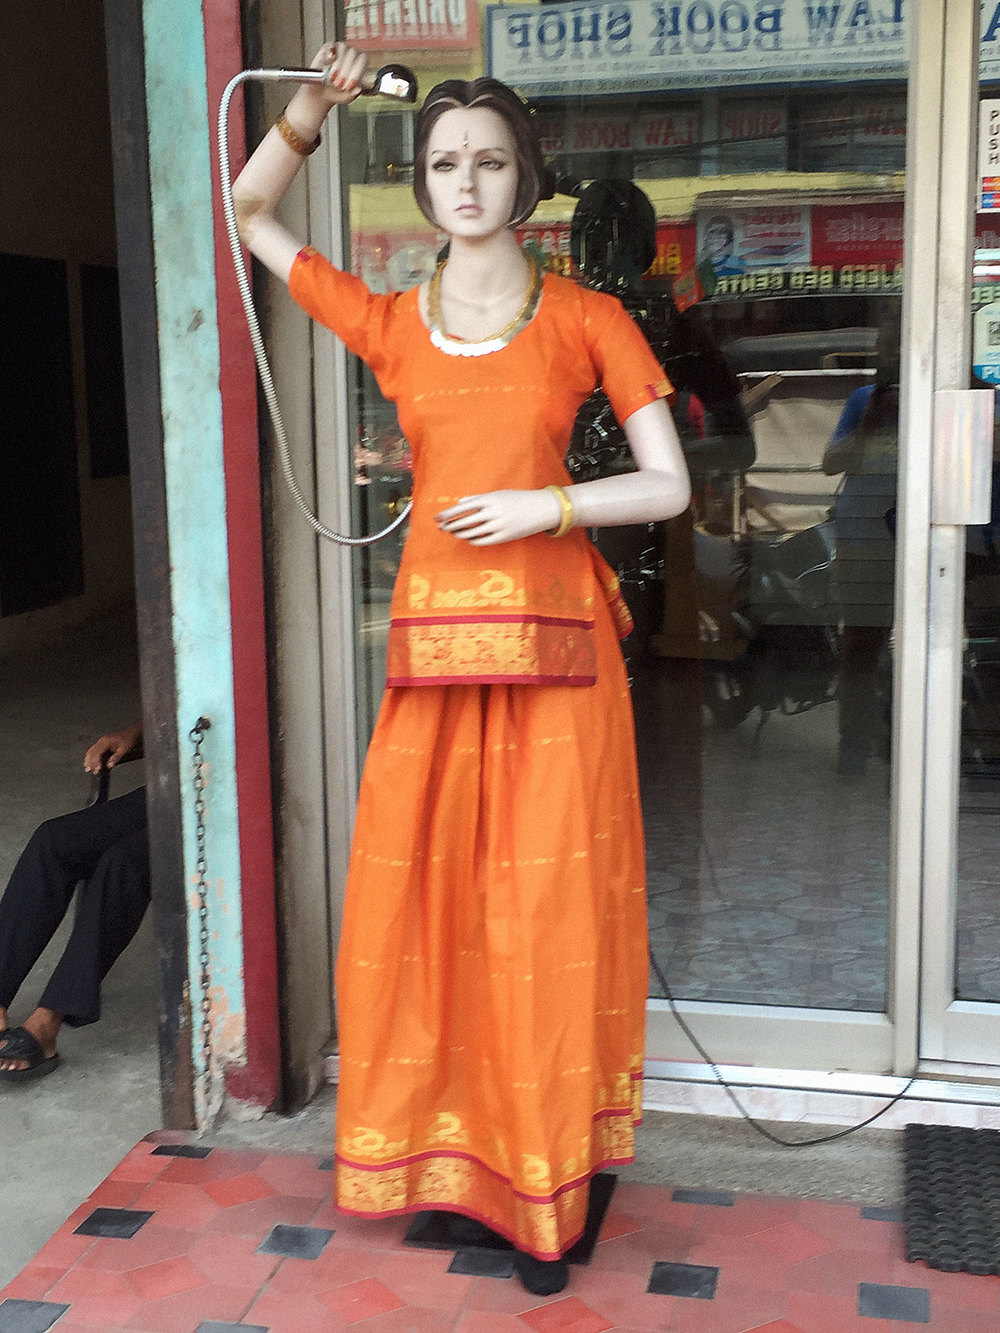 Creepy manikin on the streets of Kochi.